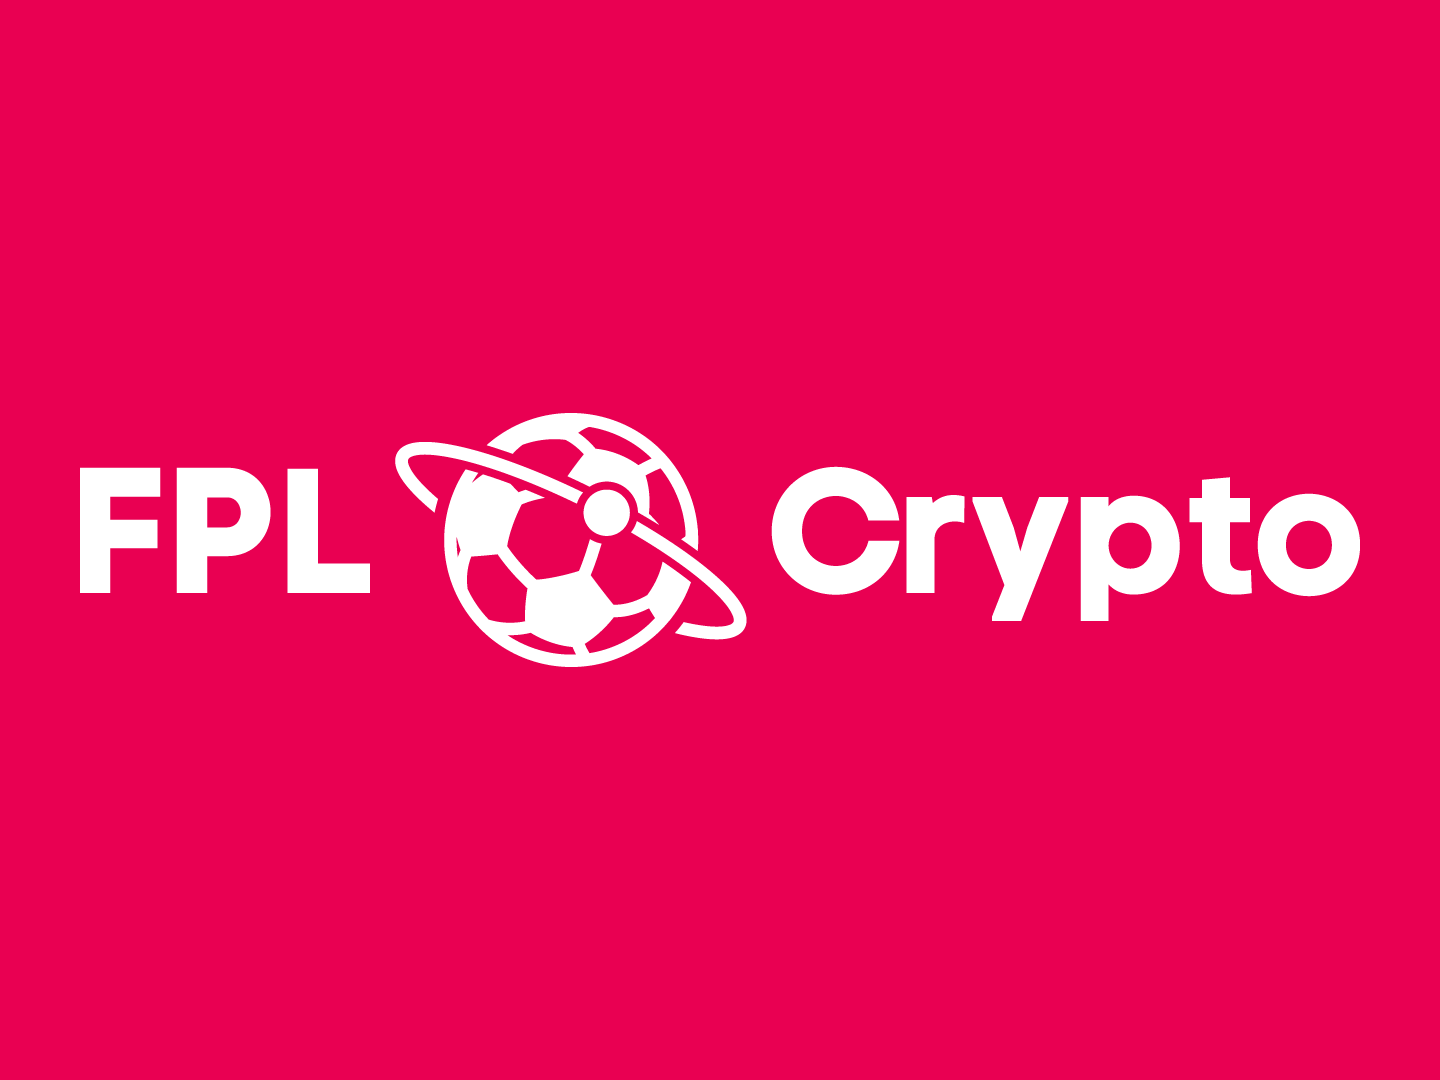 FPL Crypto by Chris Hood on Dribbble.